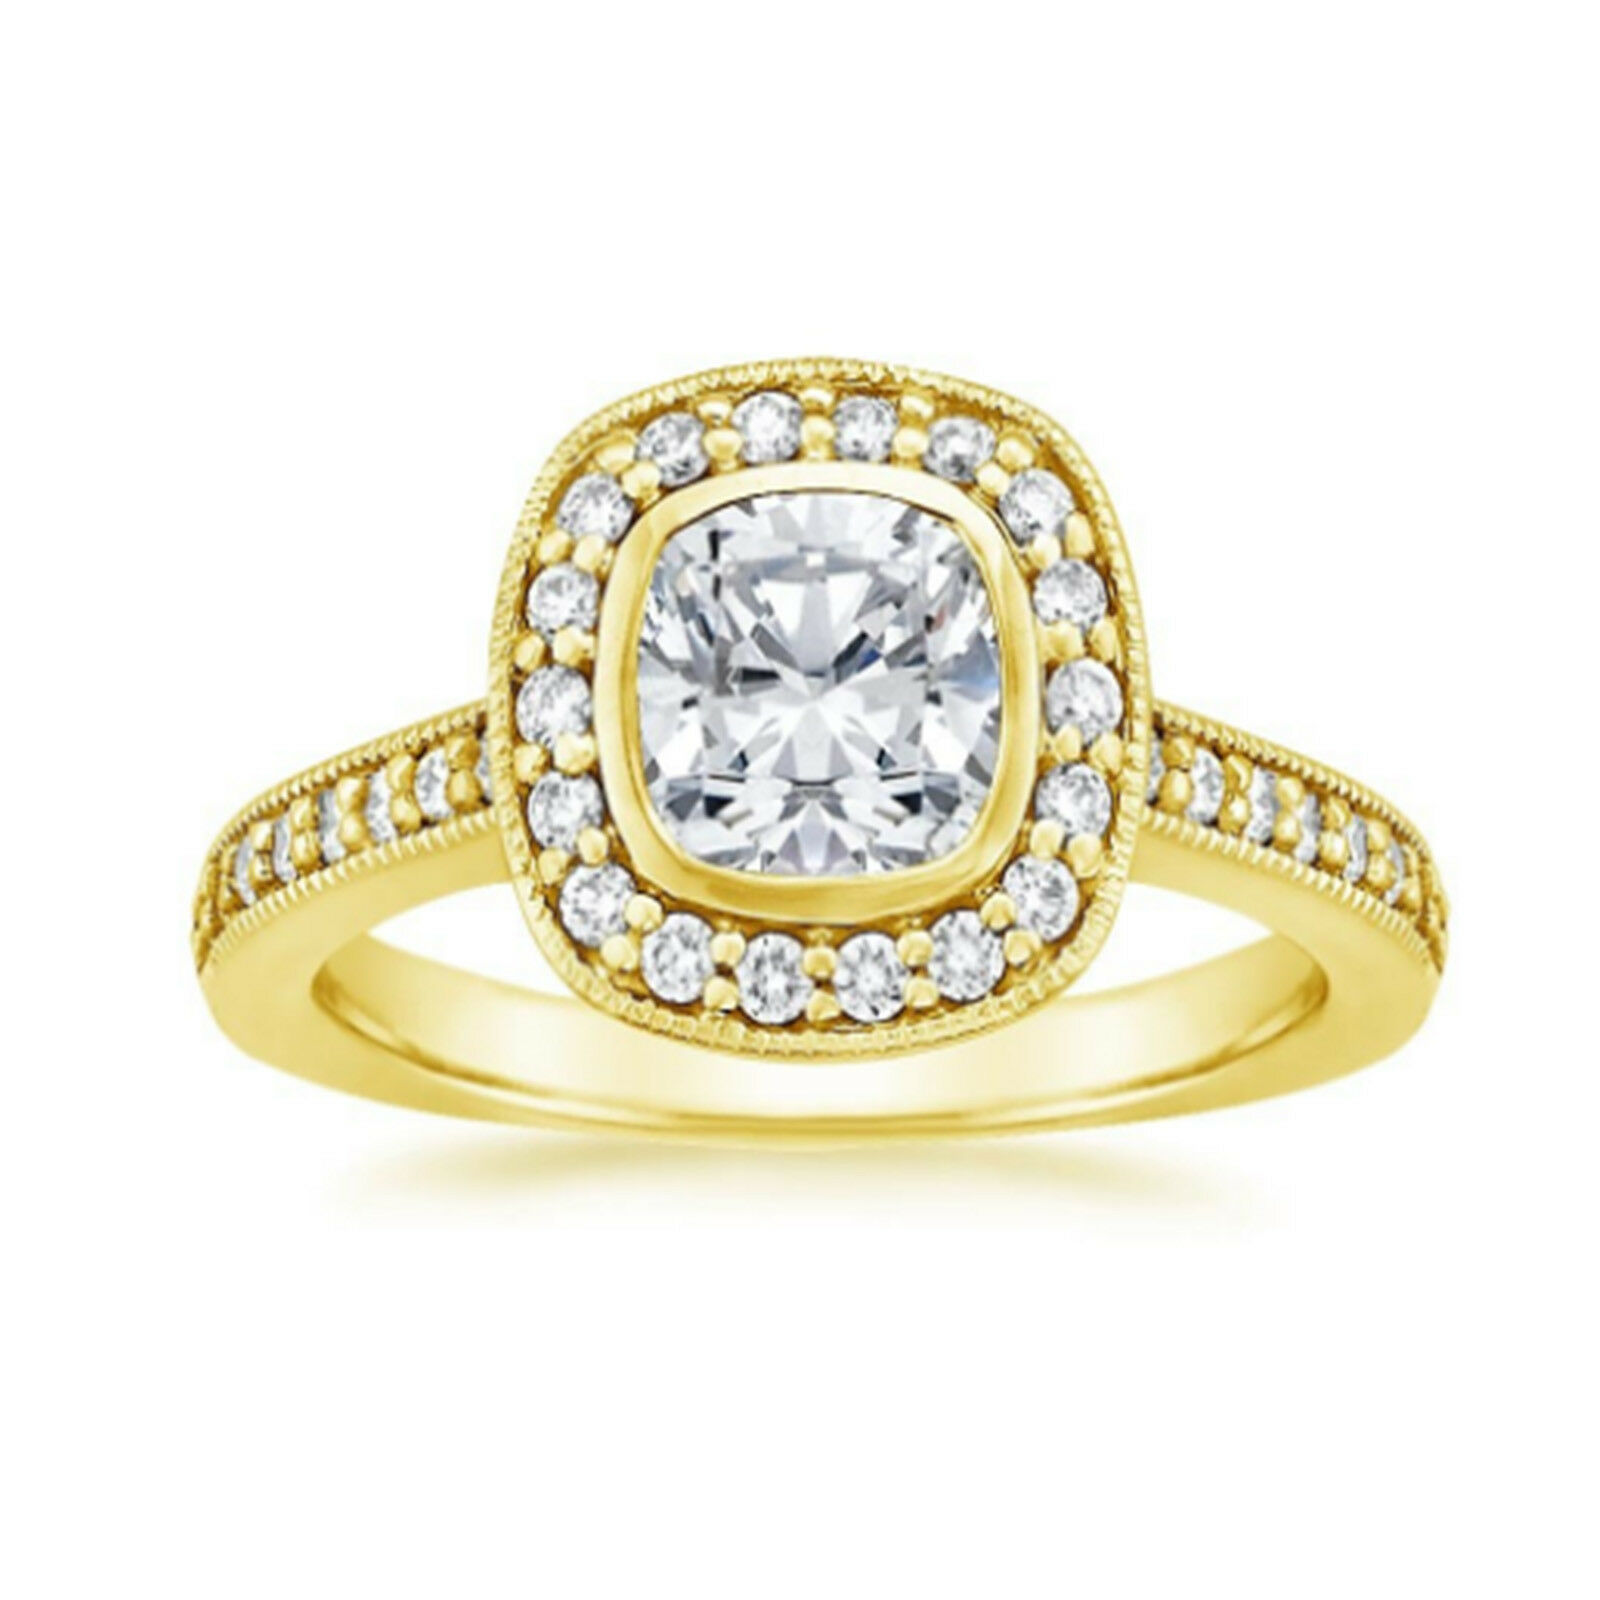 0.85 Ct Cushion Cut Solitaire Diamond Wedding Ring 14K Solid Yellow gold Size 6